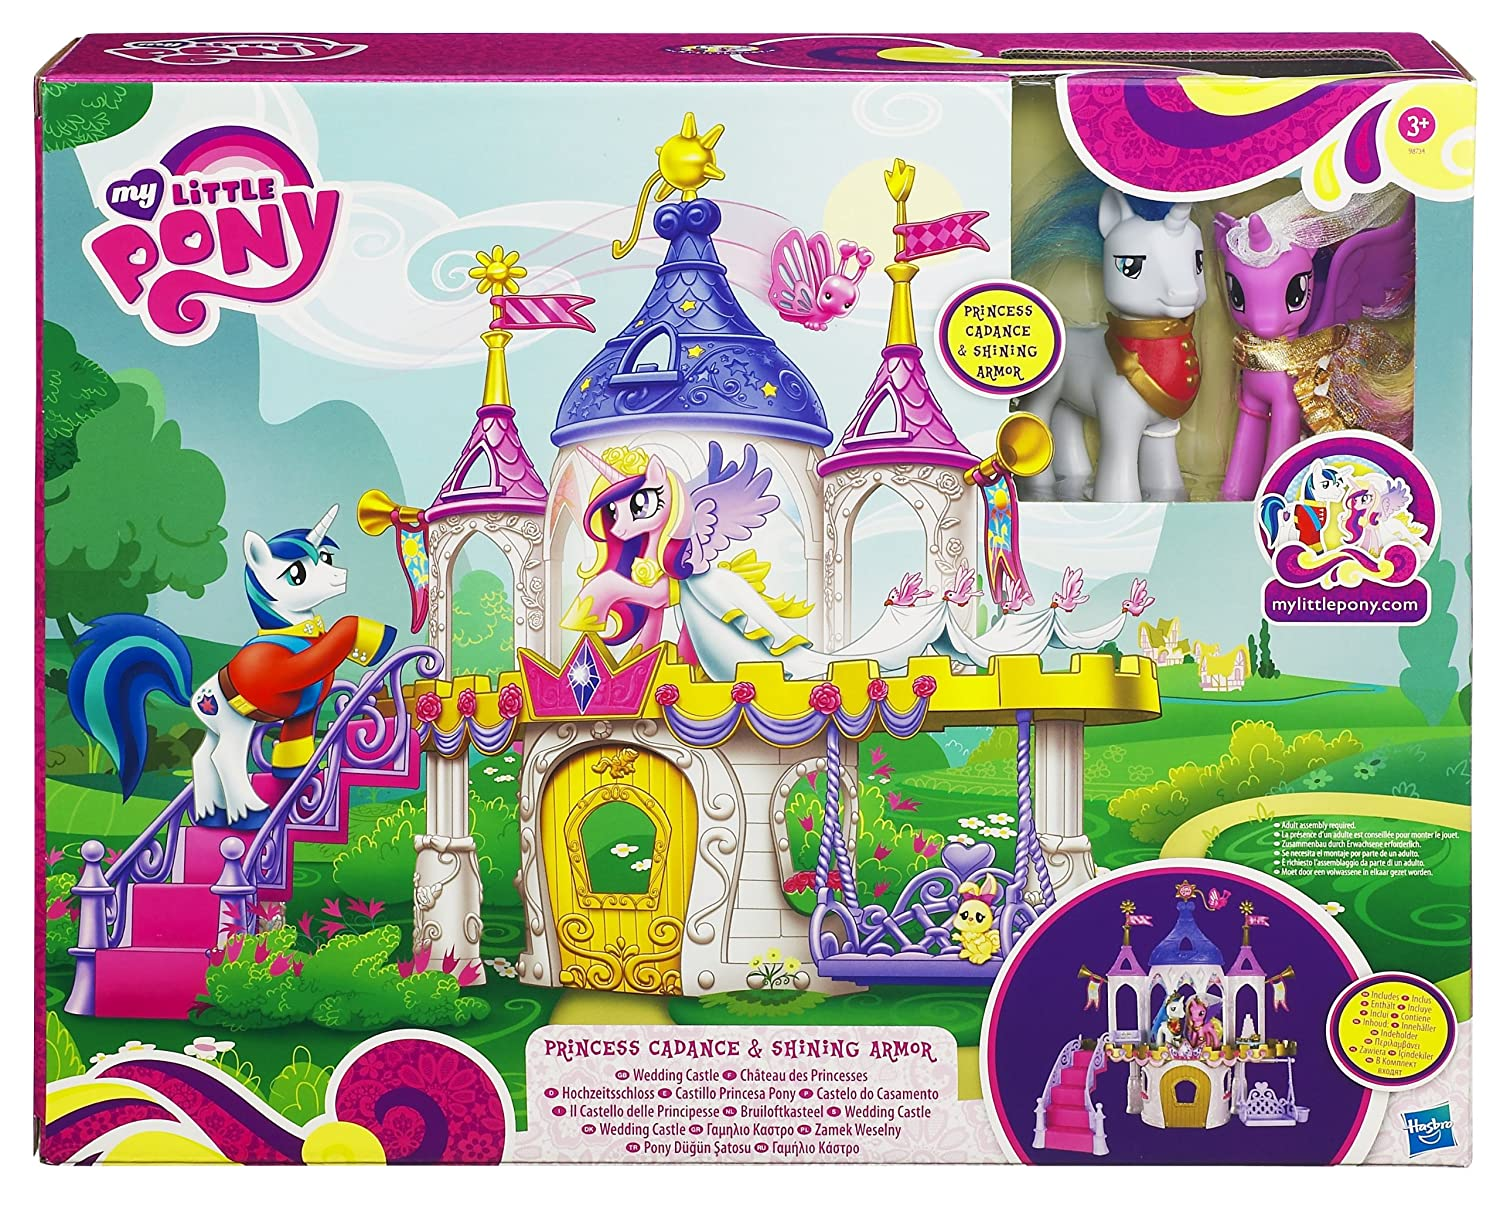 My little pony royal wedding castle playset amazon co uk toys games